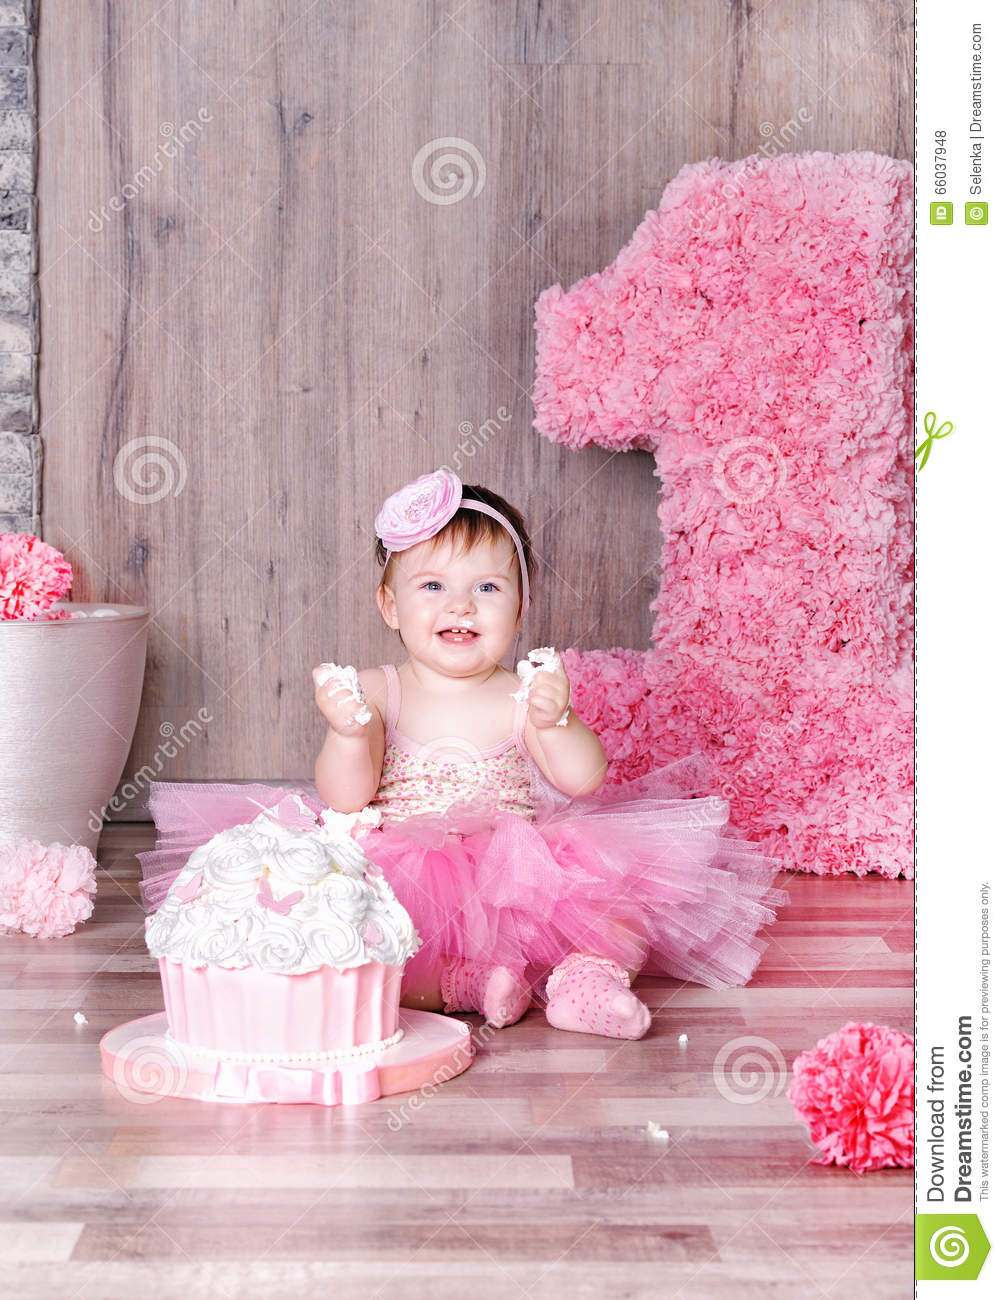 cute baby girl eating first birthday cake. stock photo - image of